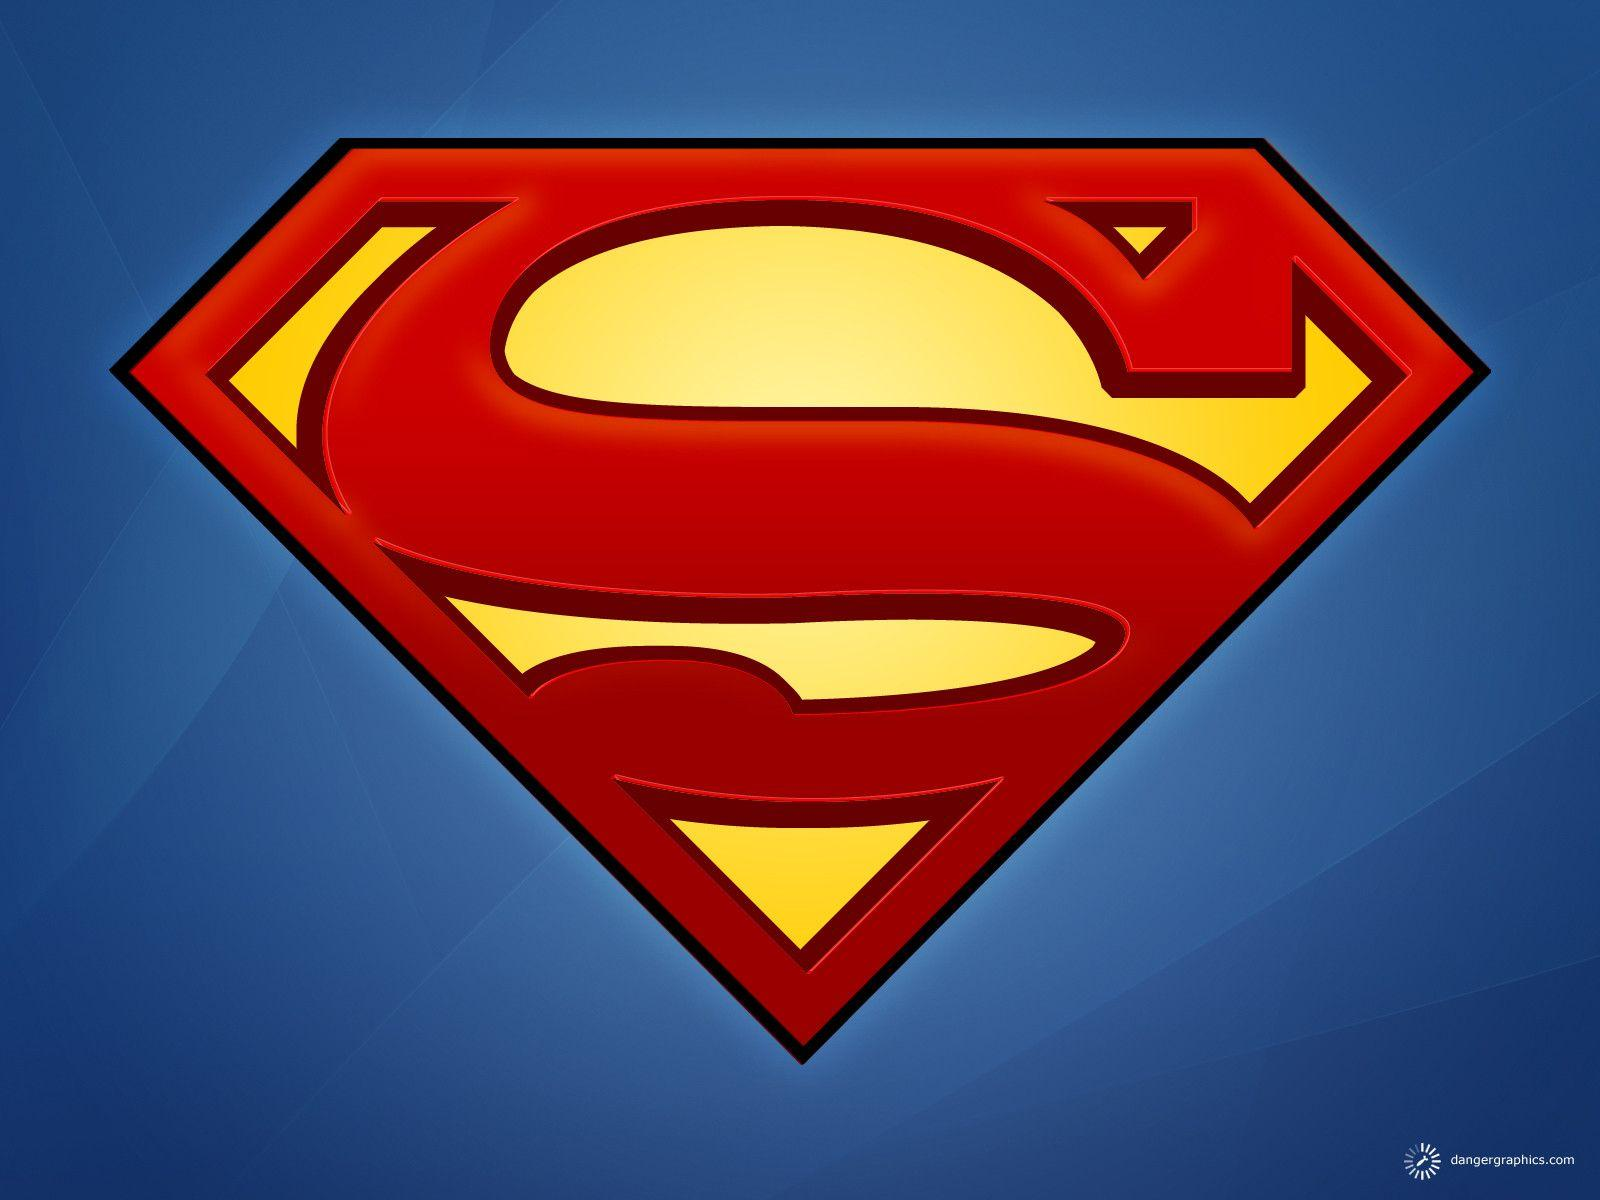 Superman Logos Wallpapers - Wallpaper Cave